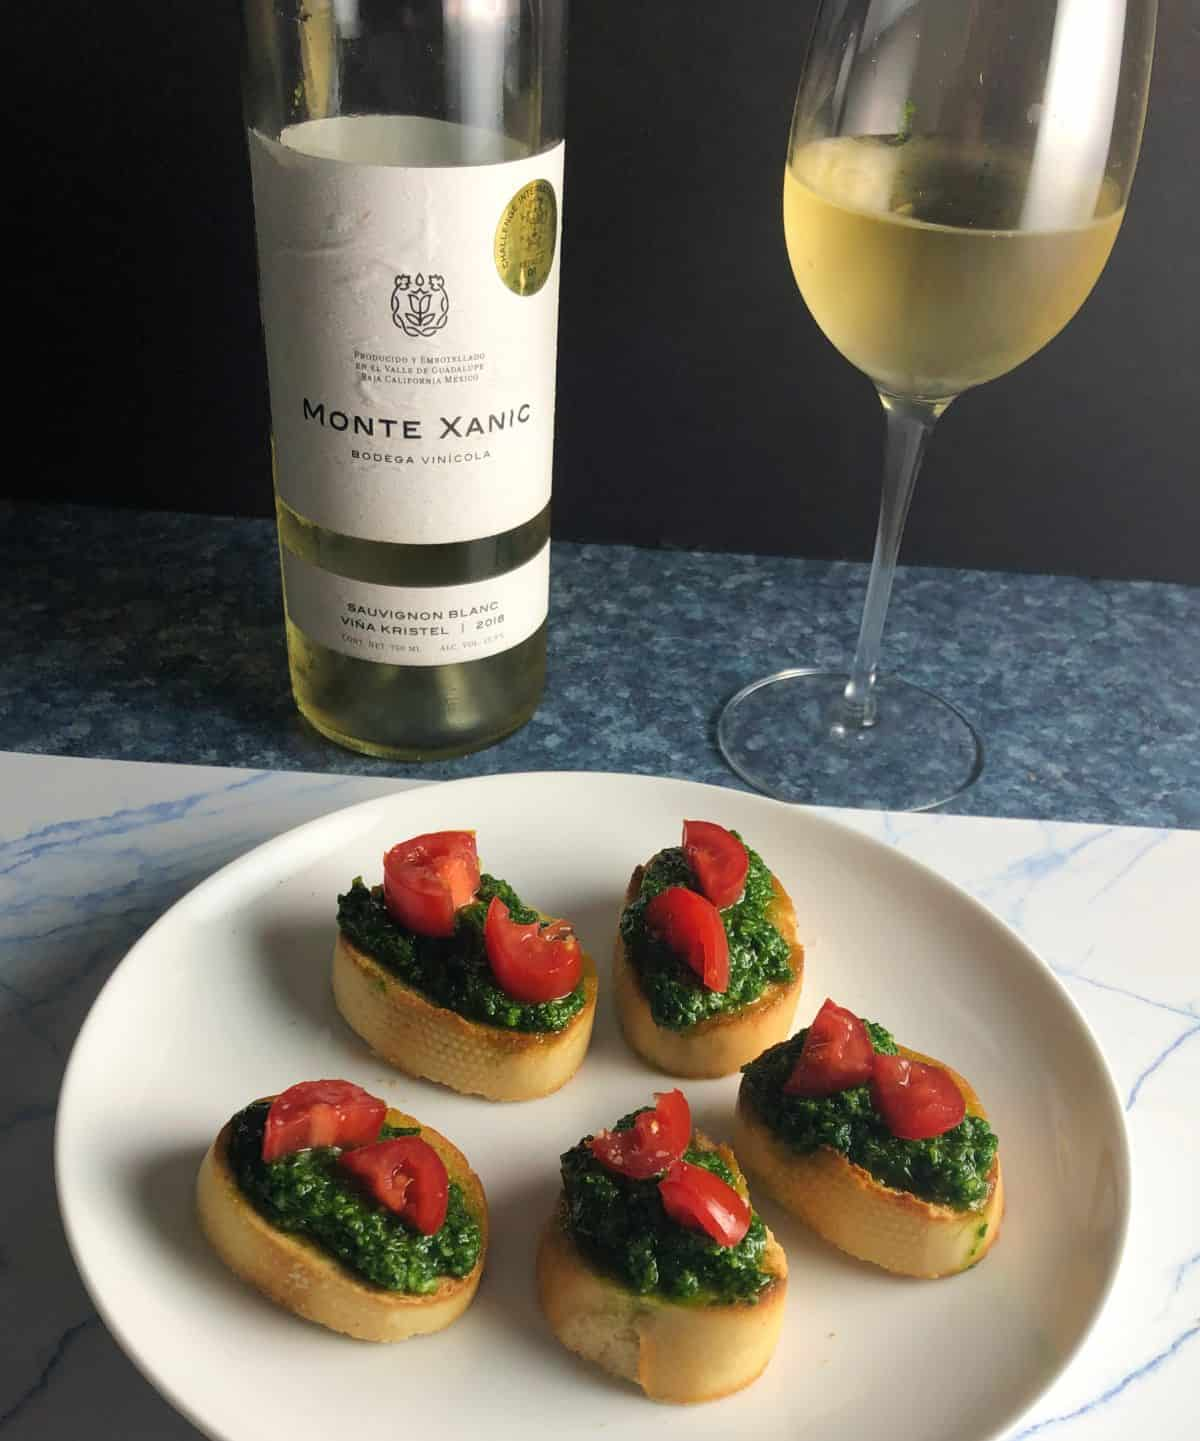 crostini topped with pesto and tomatoes, served with a white wine